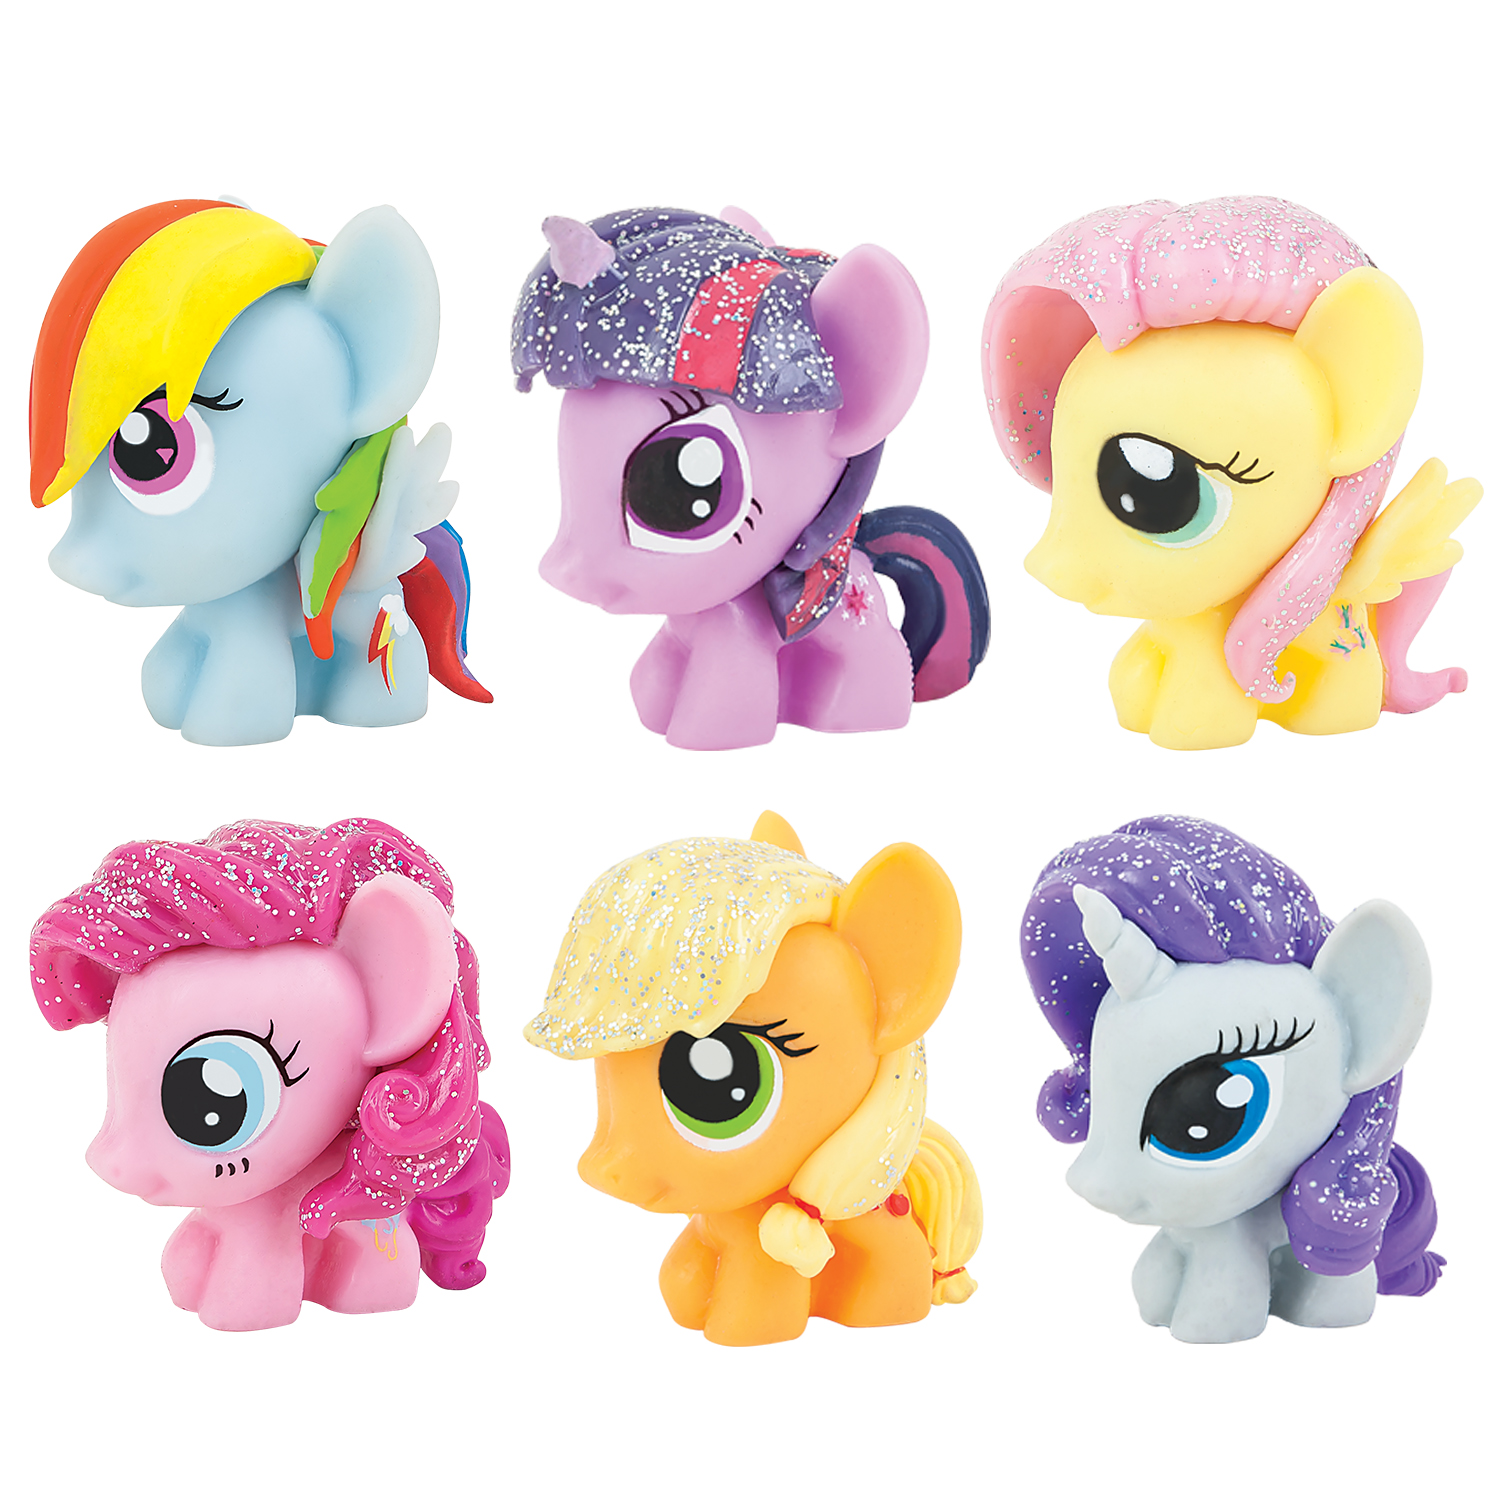 Tech 4 Kids Current And Future Mlp Products Fashems And